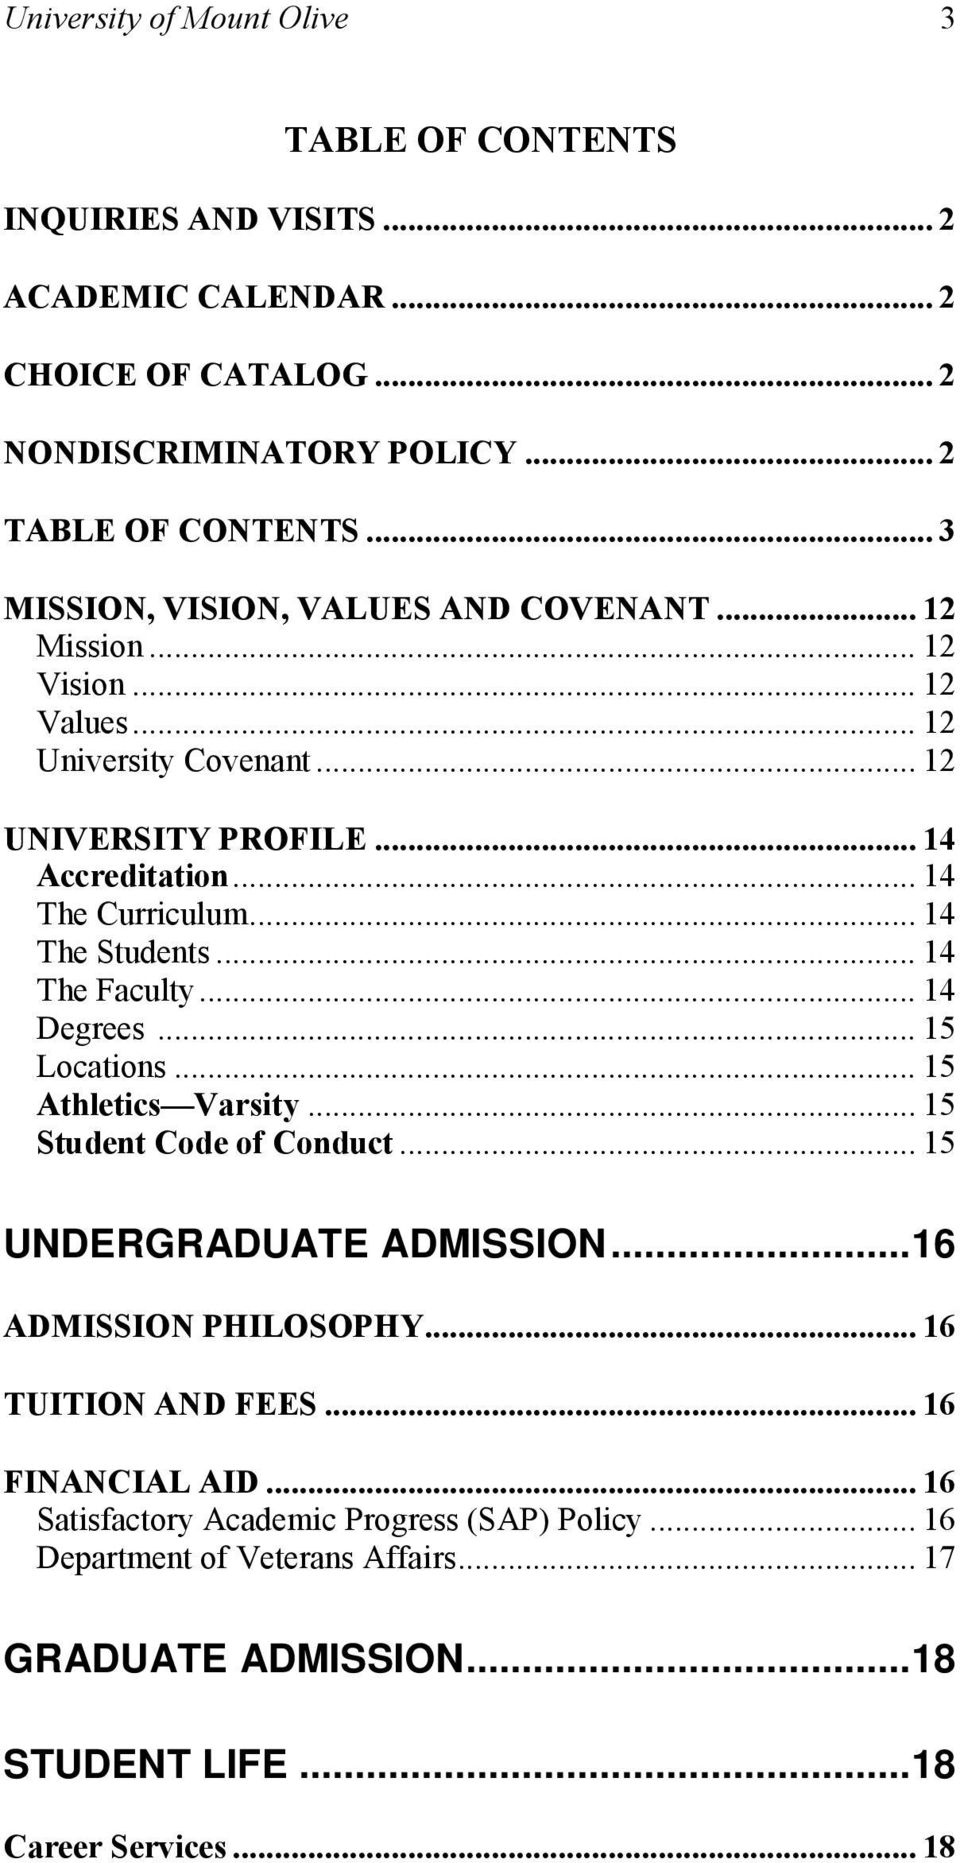 .. 14 The tudents... 14 The aculty... 14 Degrees... 15 Locations... 15 Athletics Varsity... 15 tudent Code of Conduct... 15 UNDERGRADUATE ADMIION... 16 ADMIION PHILOOPHY.